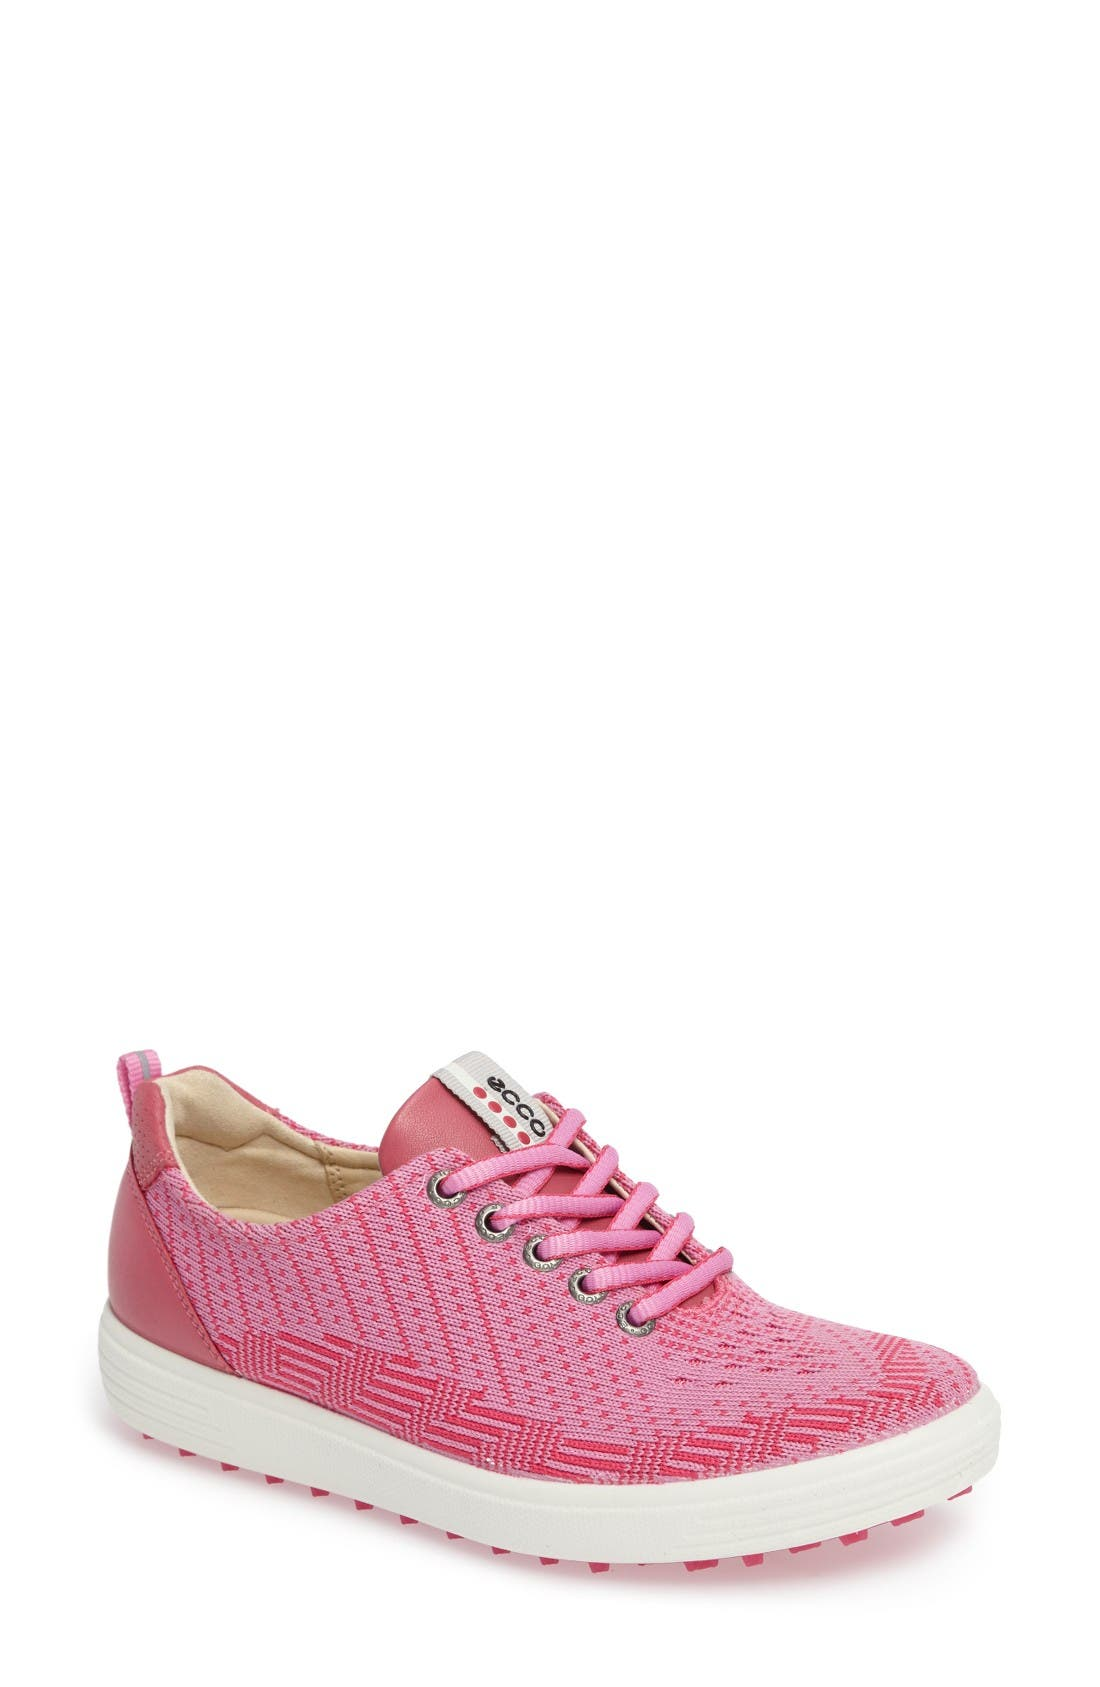 Casual Hybrid Knit Golf Sneaker,                         Main,                         color, Pink/ Beetroot Leather